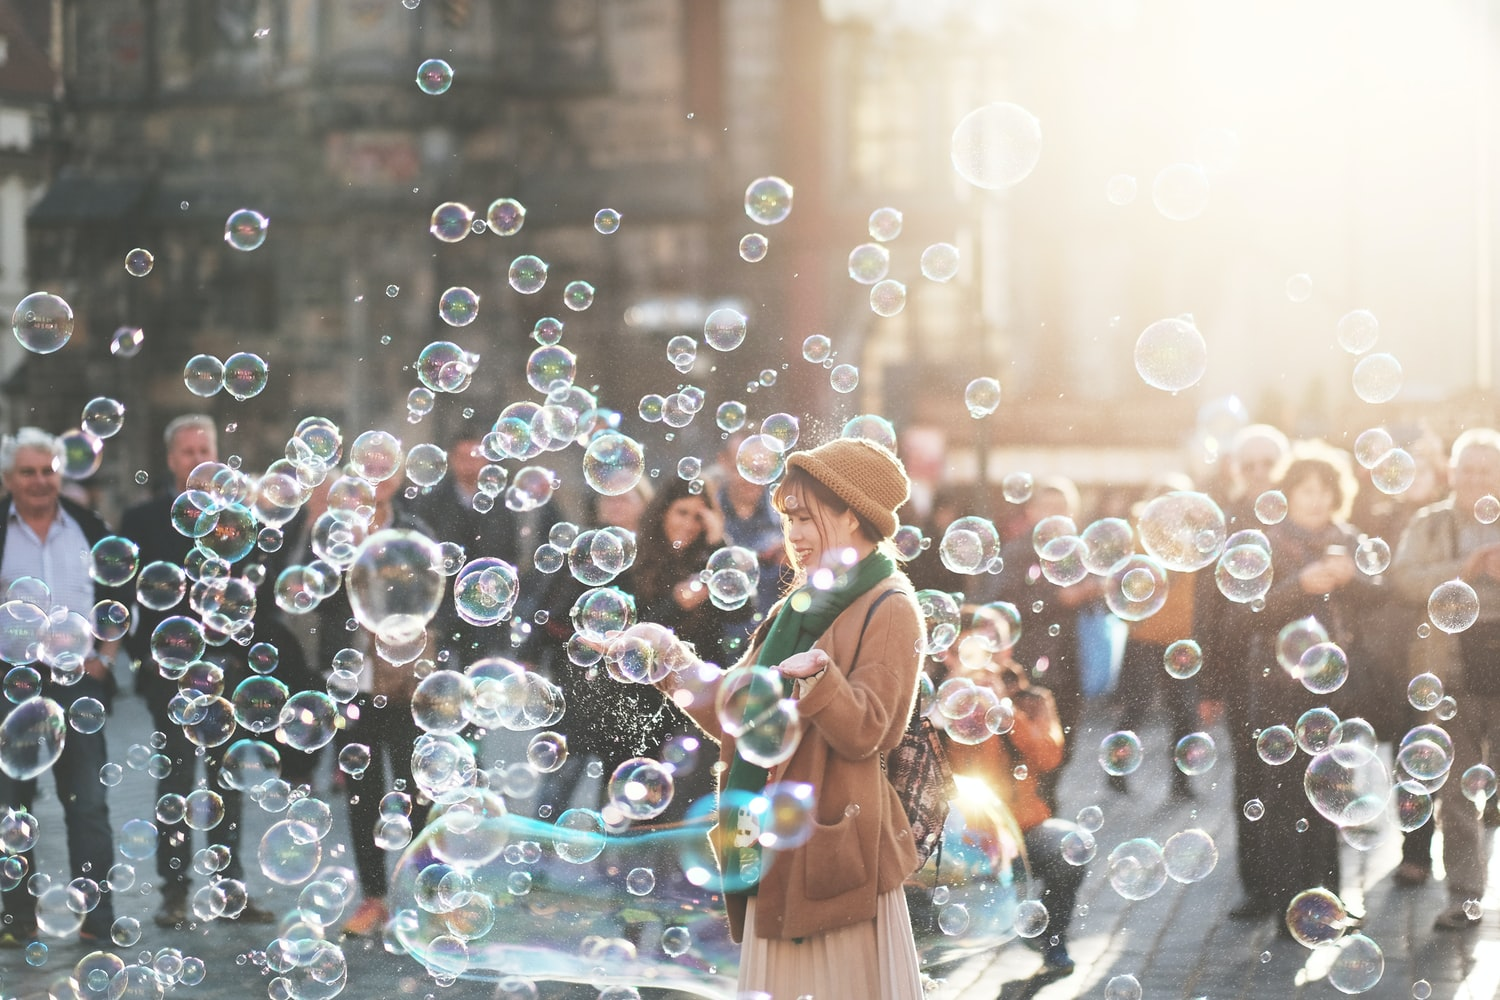 Woman blowing soap bubbles on a busy street